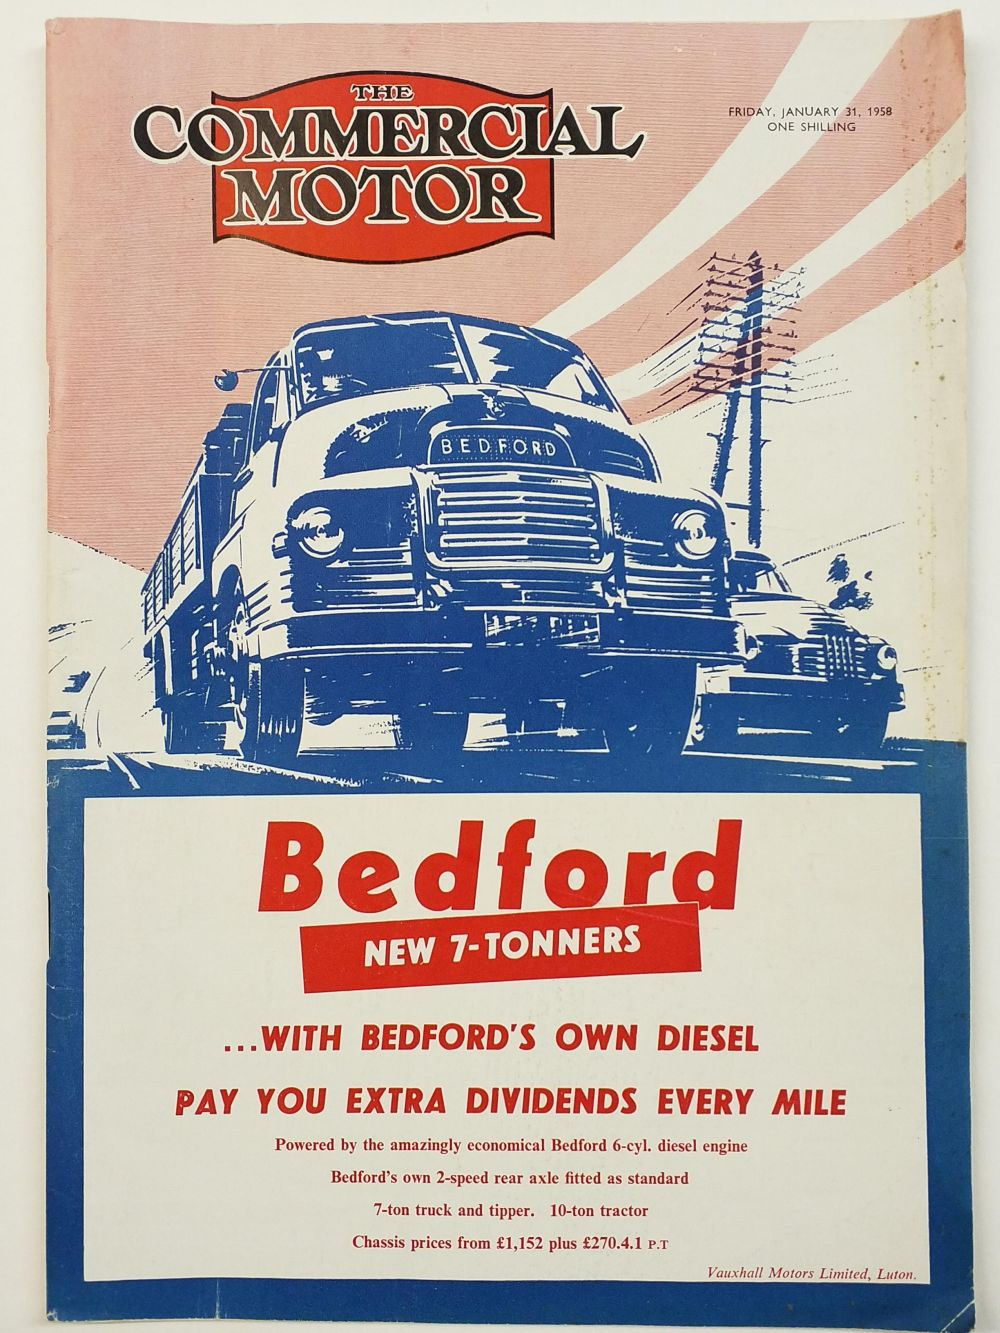 Commercial Motor. The Commercial Motor, 74 issues, a broken run, published 1954-62